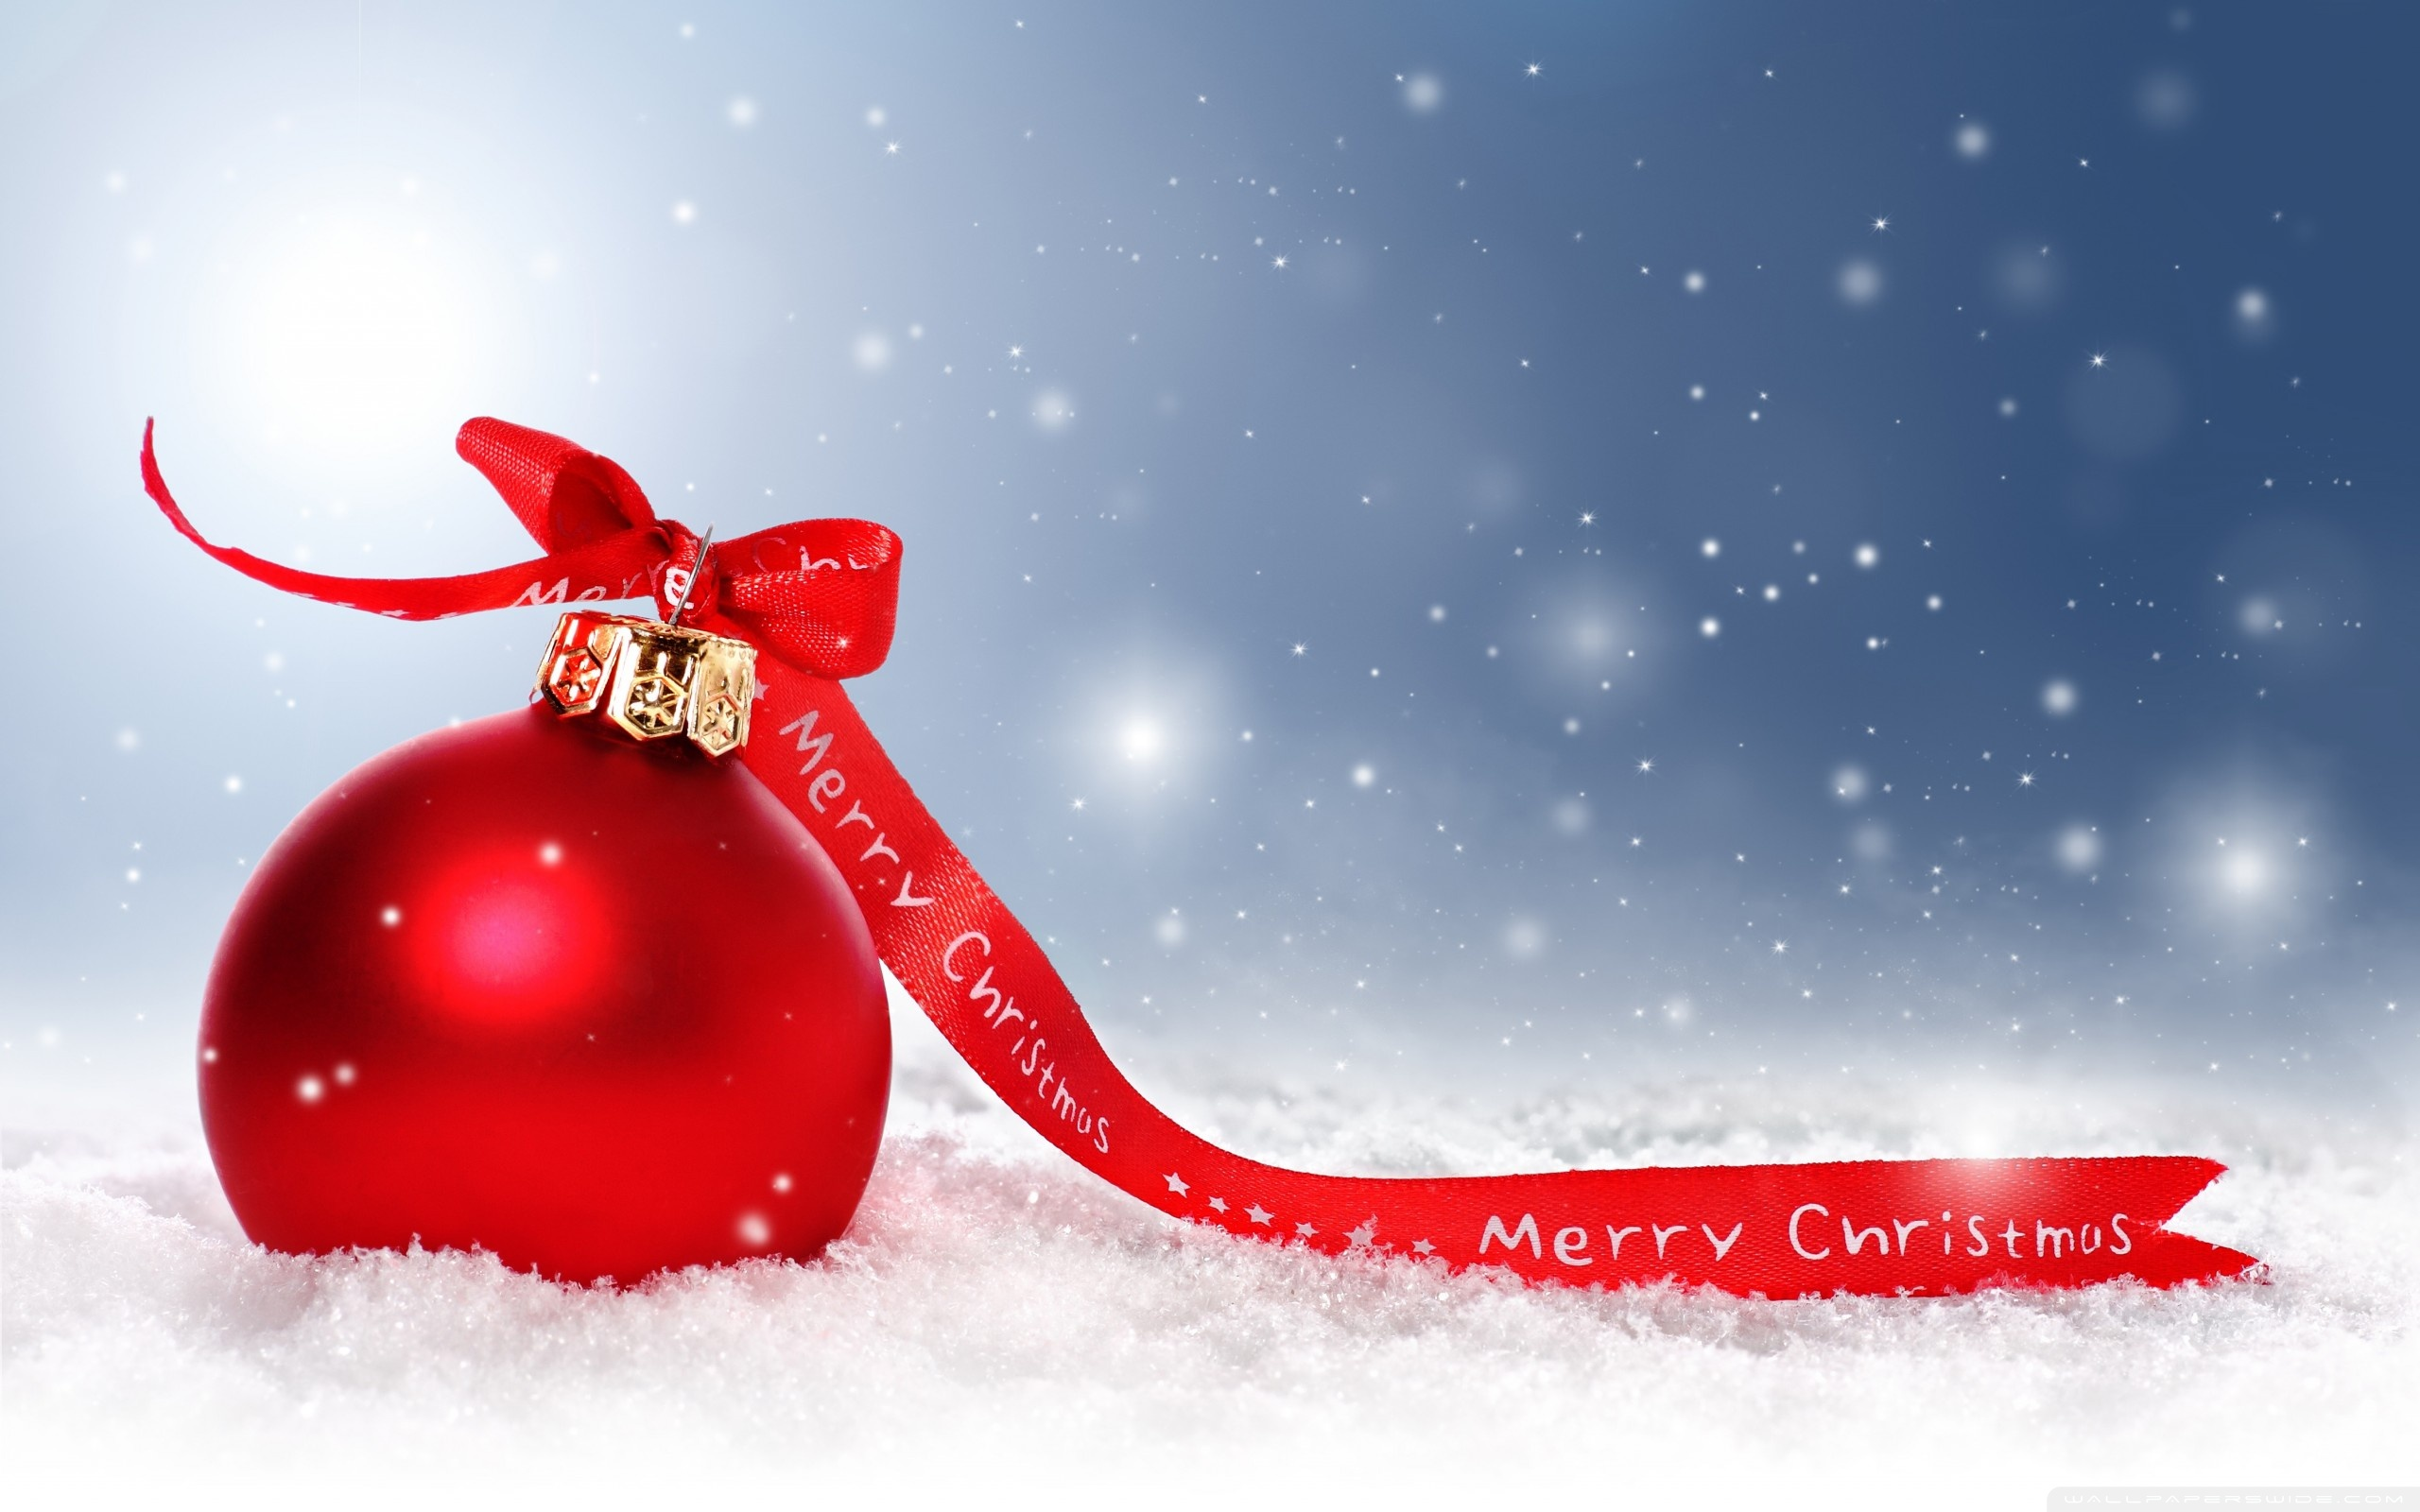 Where Are You Christmas.Faith Hill Where Are You Christmas Help Change The